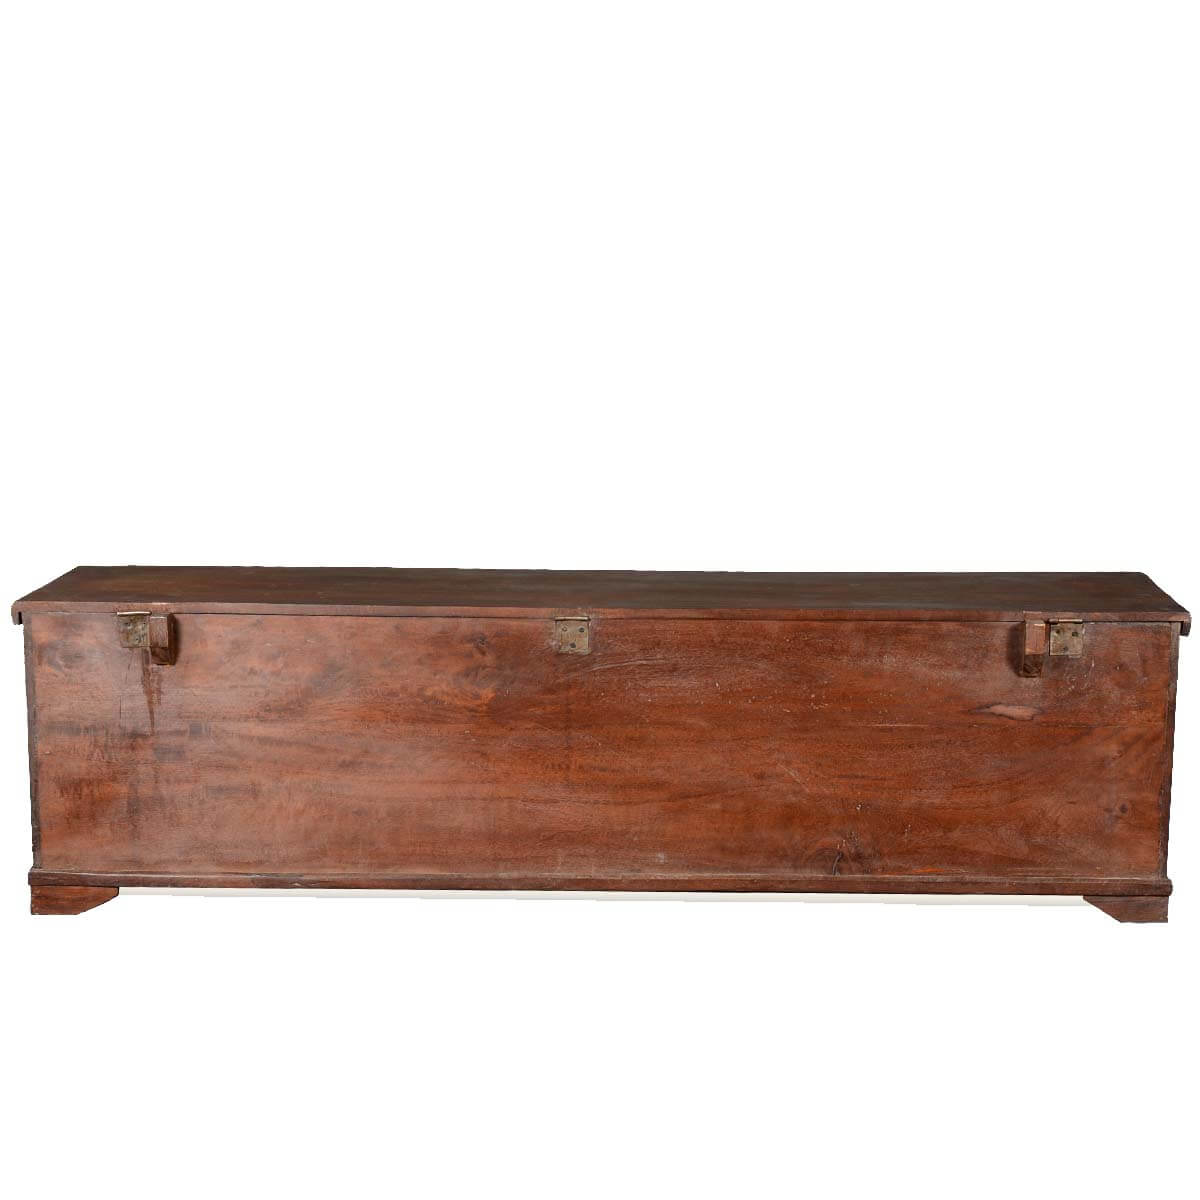 Wonderful image of  Collection Extra Long Rustic Reclaimed Wood Storage Trunk Chest with #AB8020 color and 1200x1200 pixels